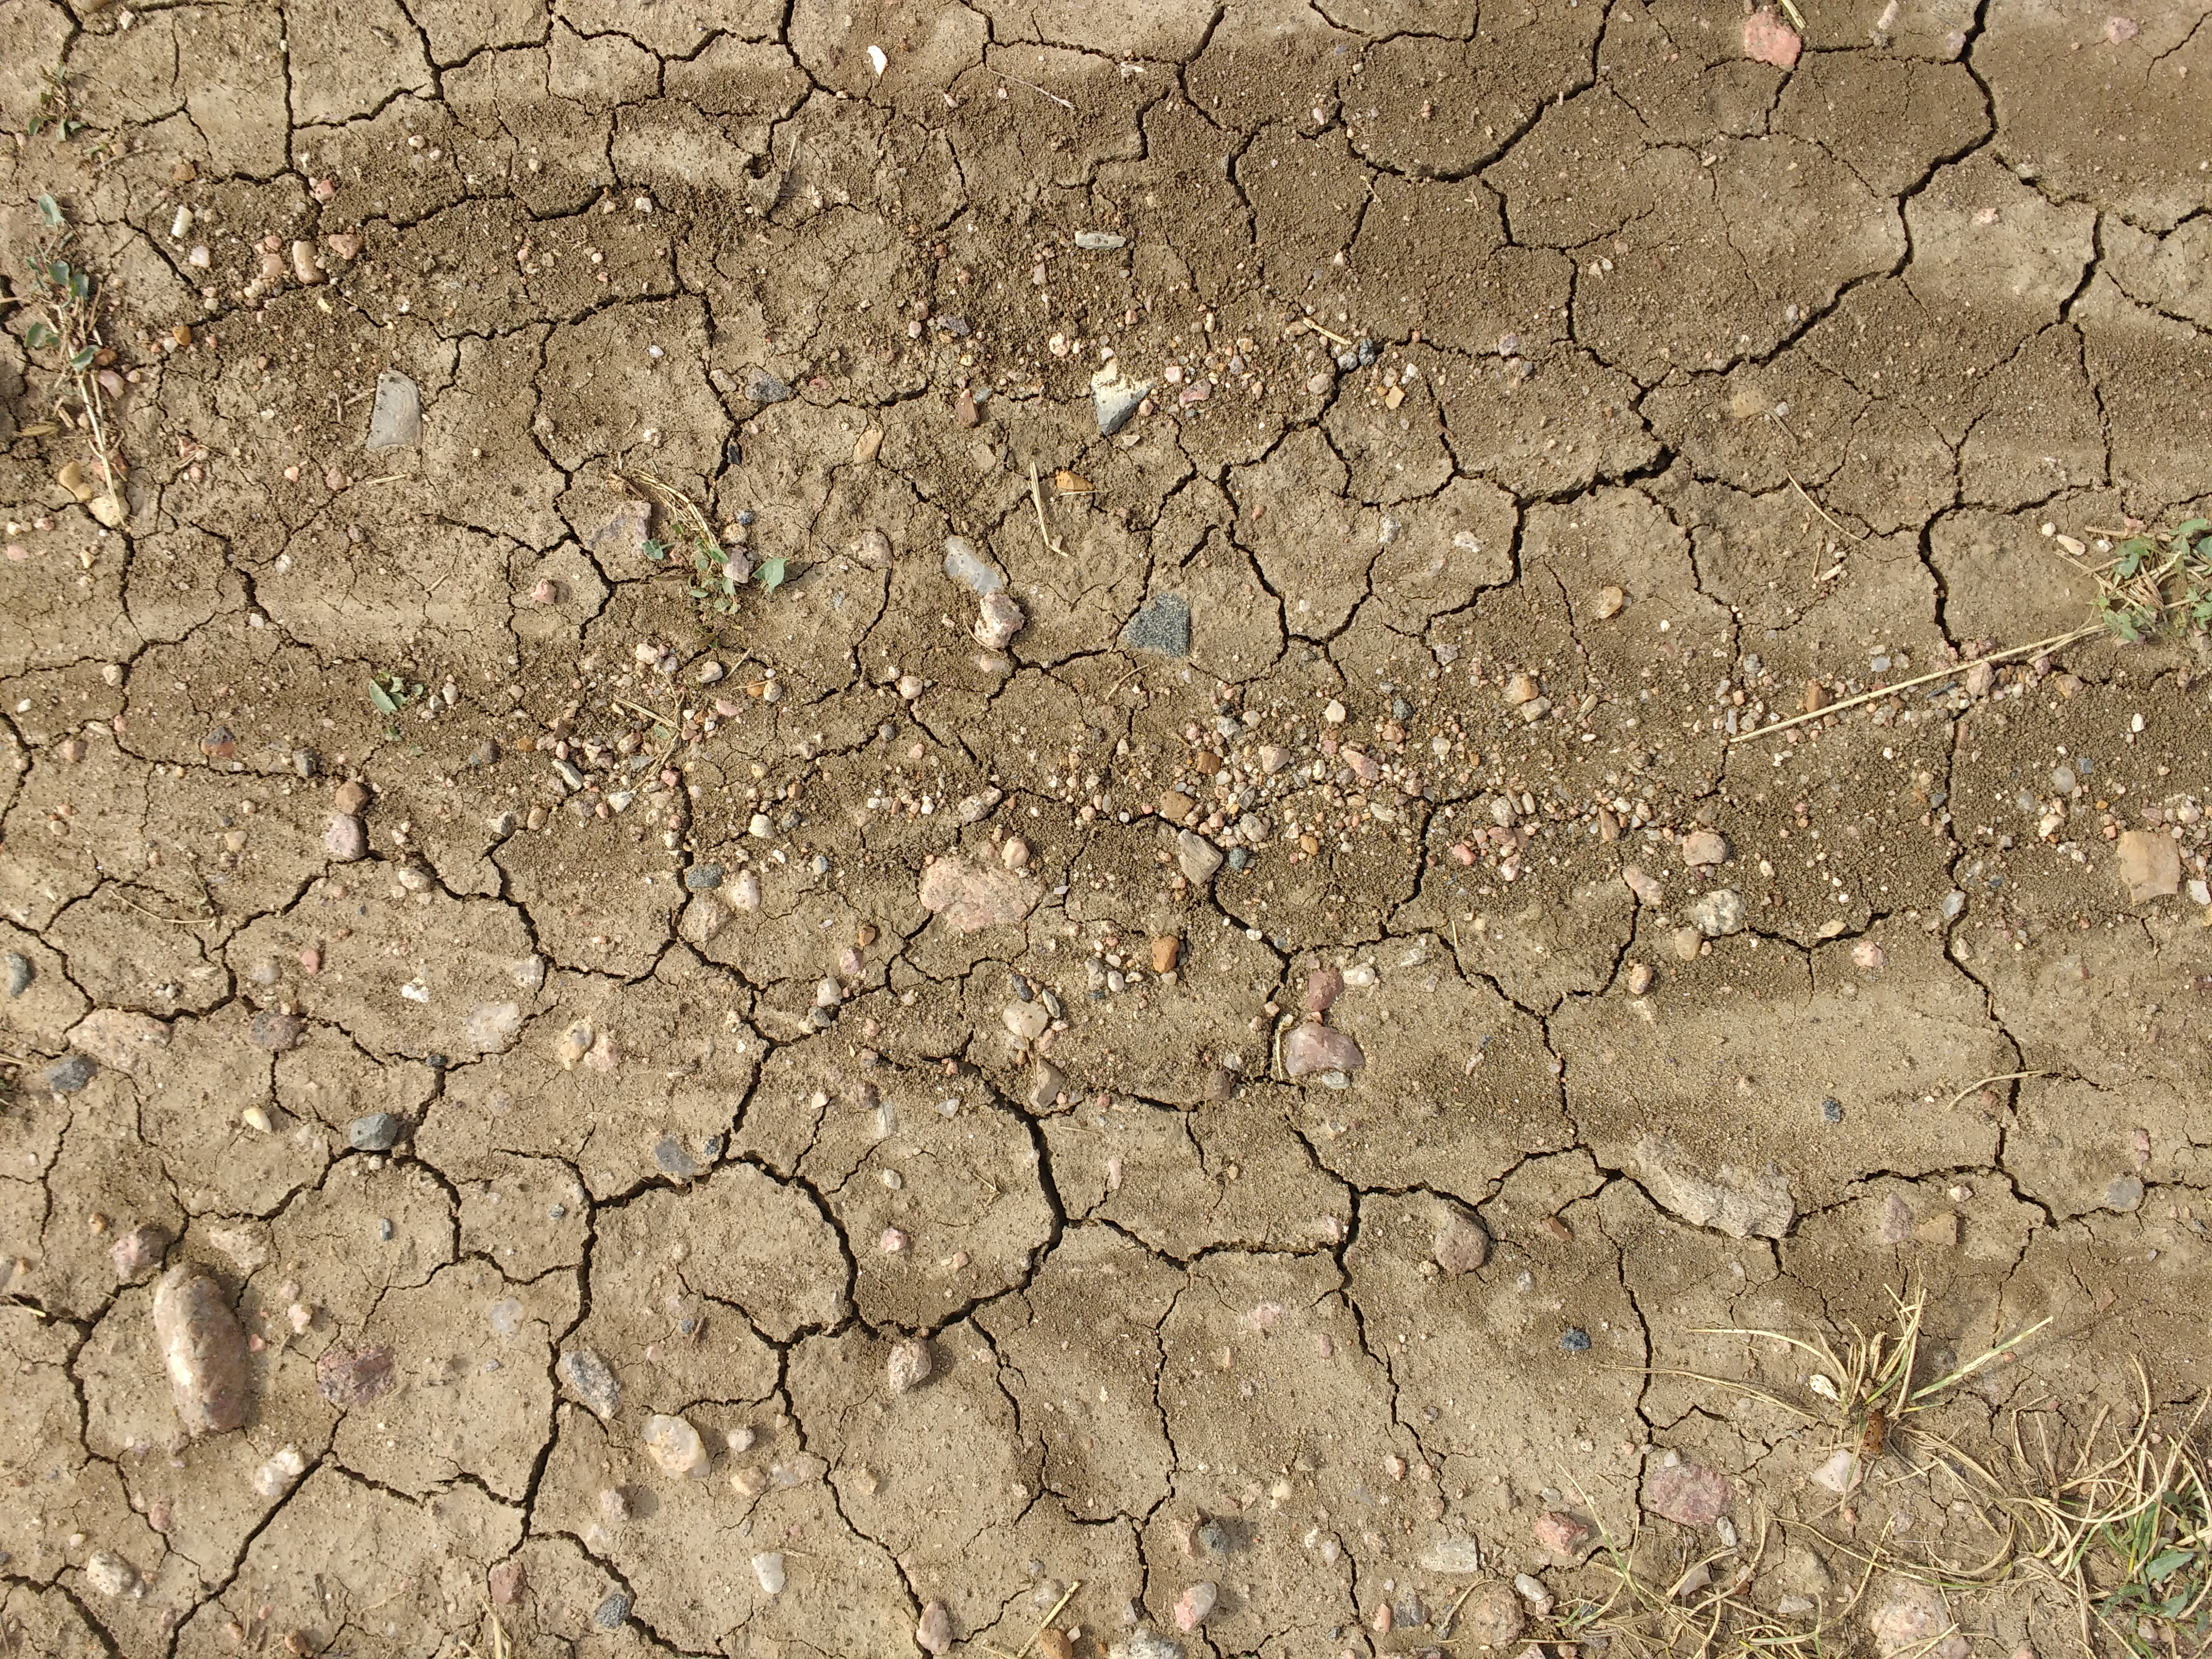 Dirt with Mud Cracks, Rocks, and Weeds Texture Picture ...